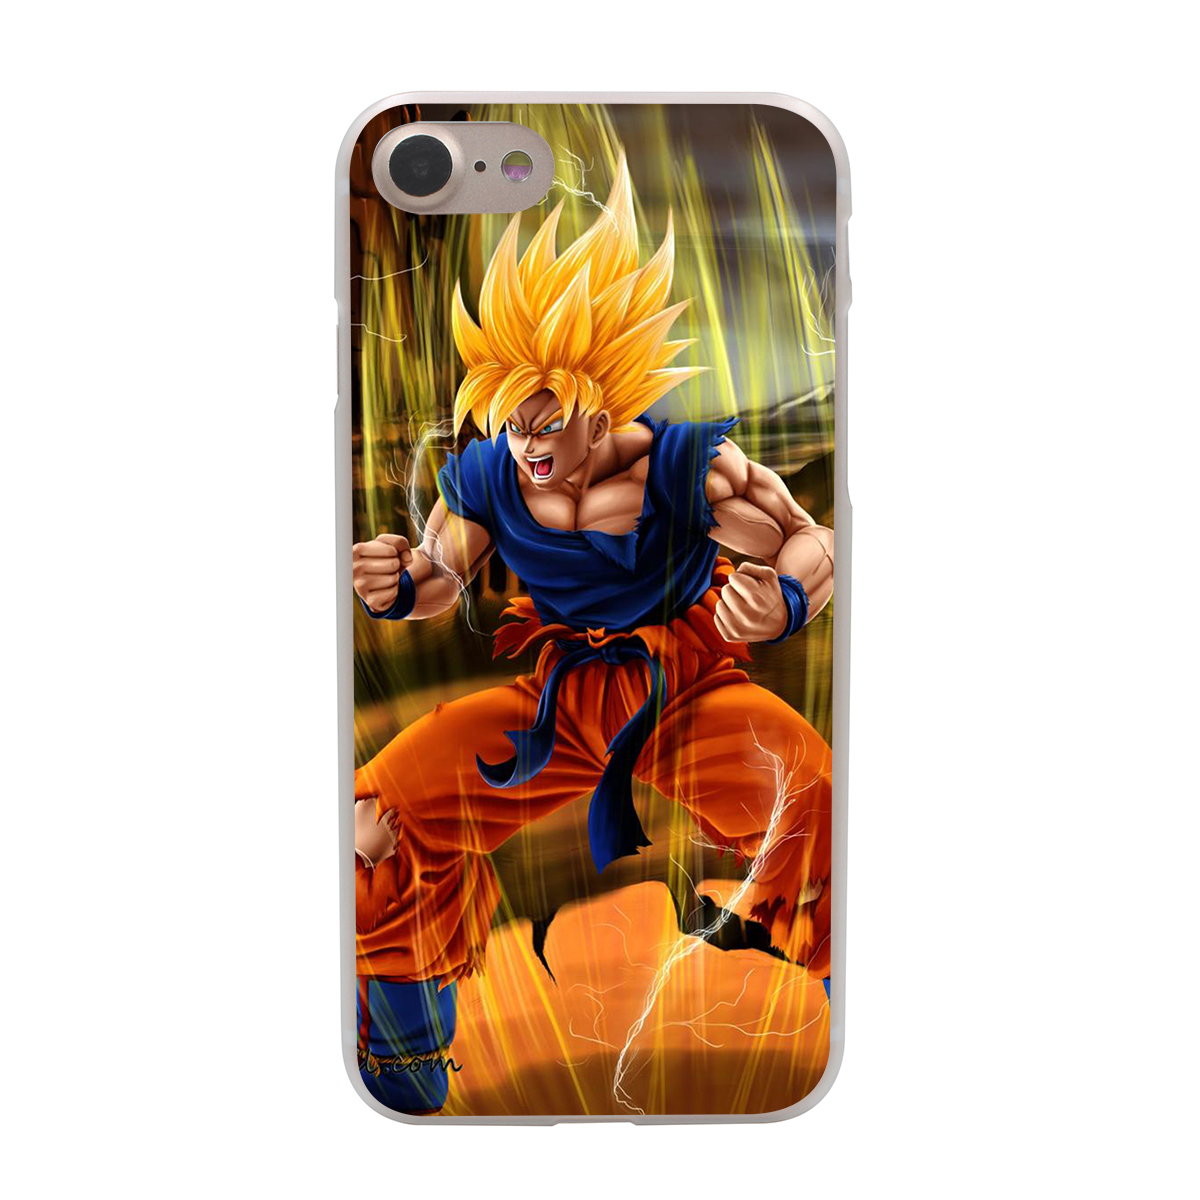 dragon ball z goku hard phone cover case transparent for apple iphone 7 7 plus 6 6s plus 5 5s se. Black Bedroom Furniture Sets. Home Design Ideas